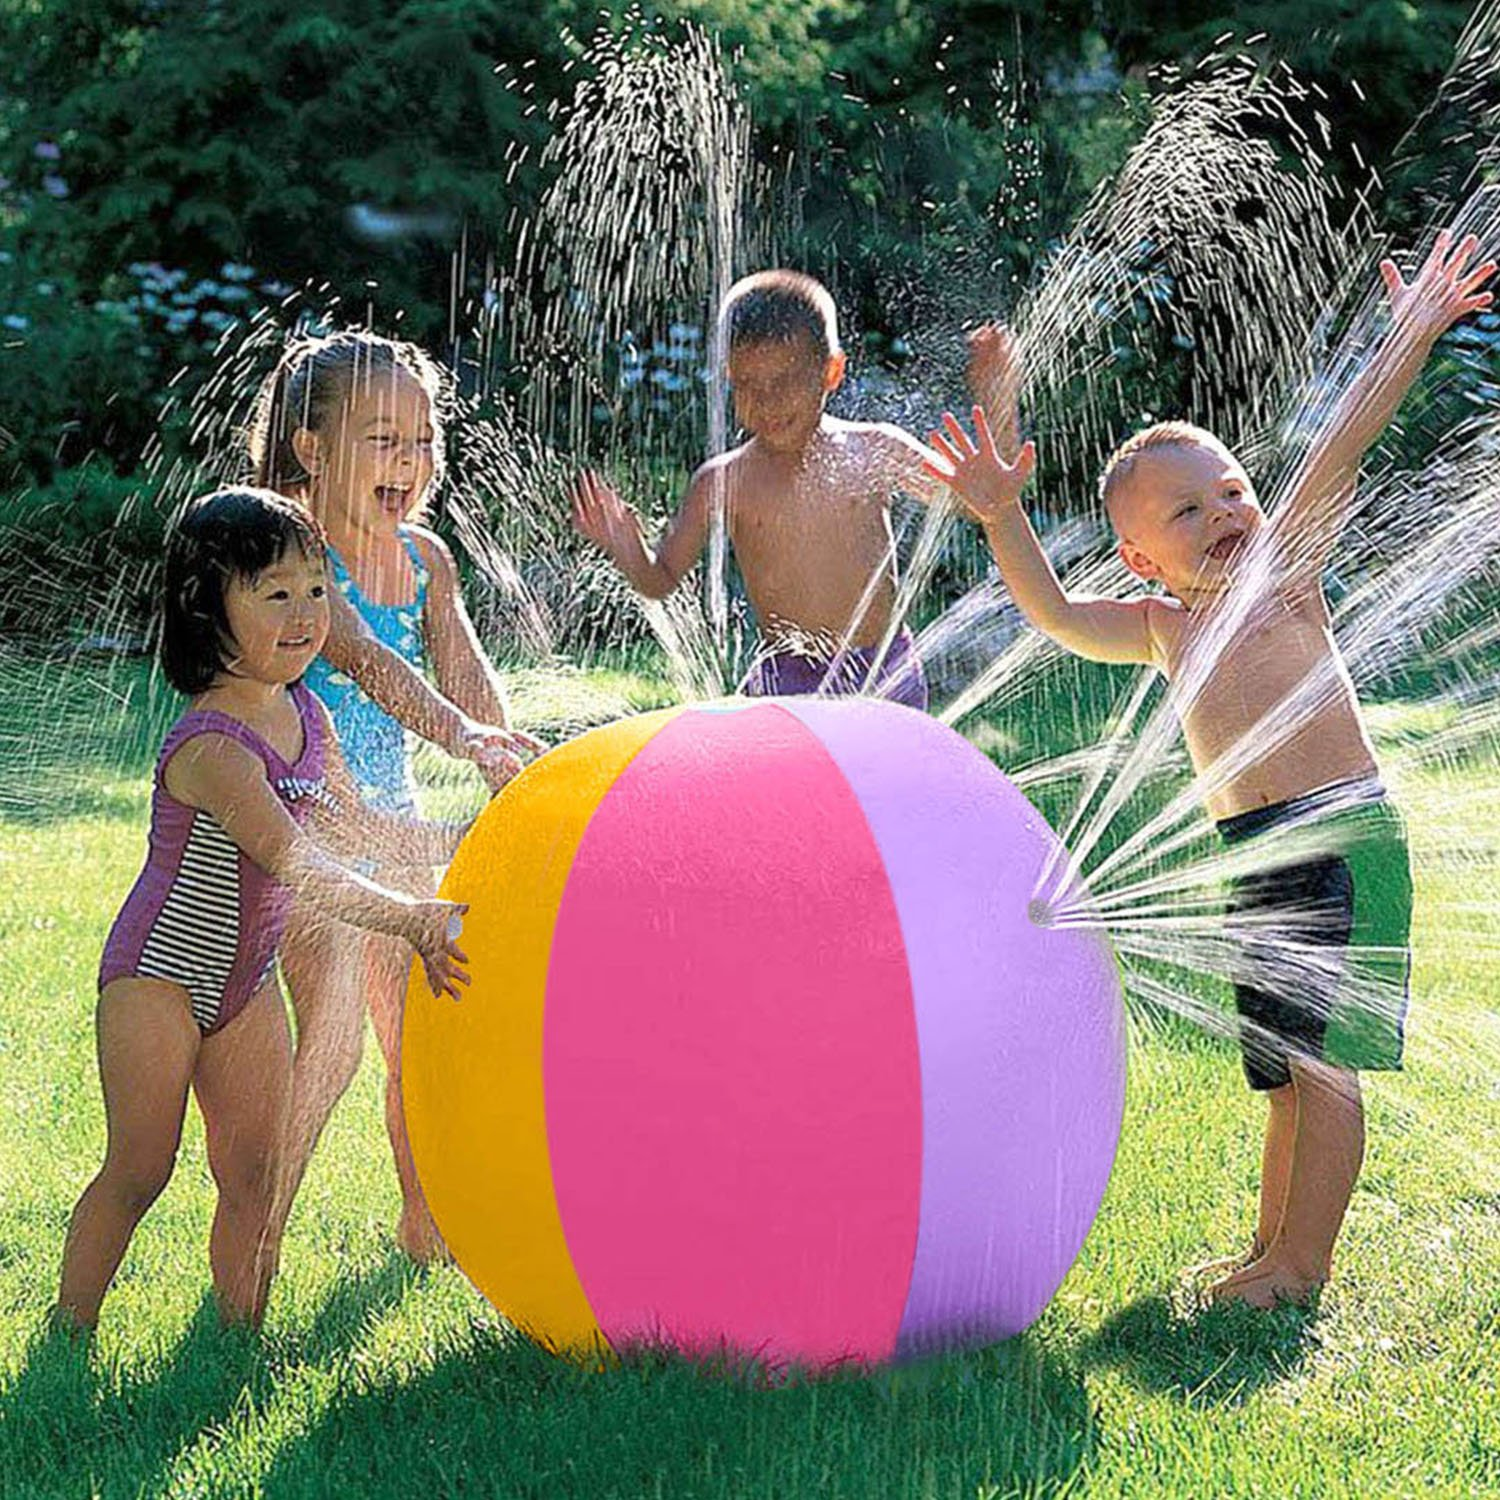 BESTTY Water Sprinkler Ball Inflatable Spray Ball Toy Beach Ball for Kids Outdoor Summer Ball Toy for Swimming Party Beach Pool Play [ 60 cm/23.6 Inch ]